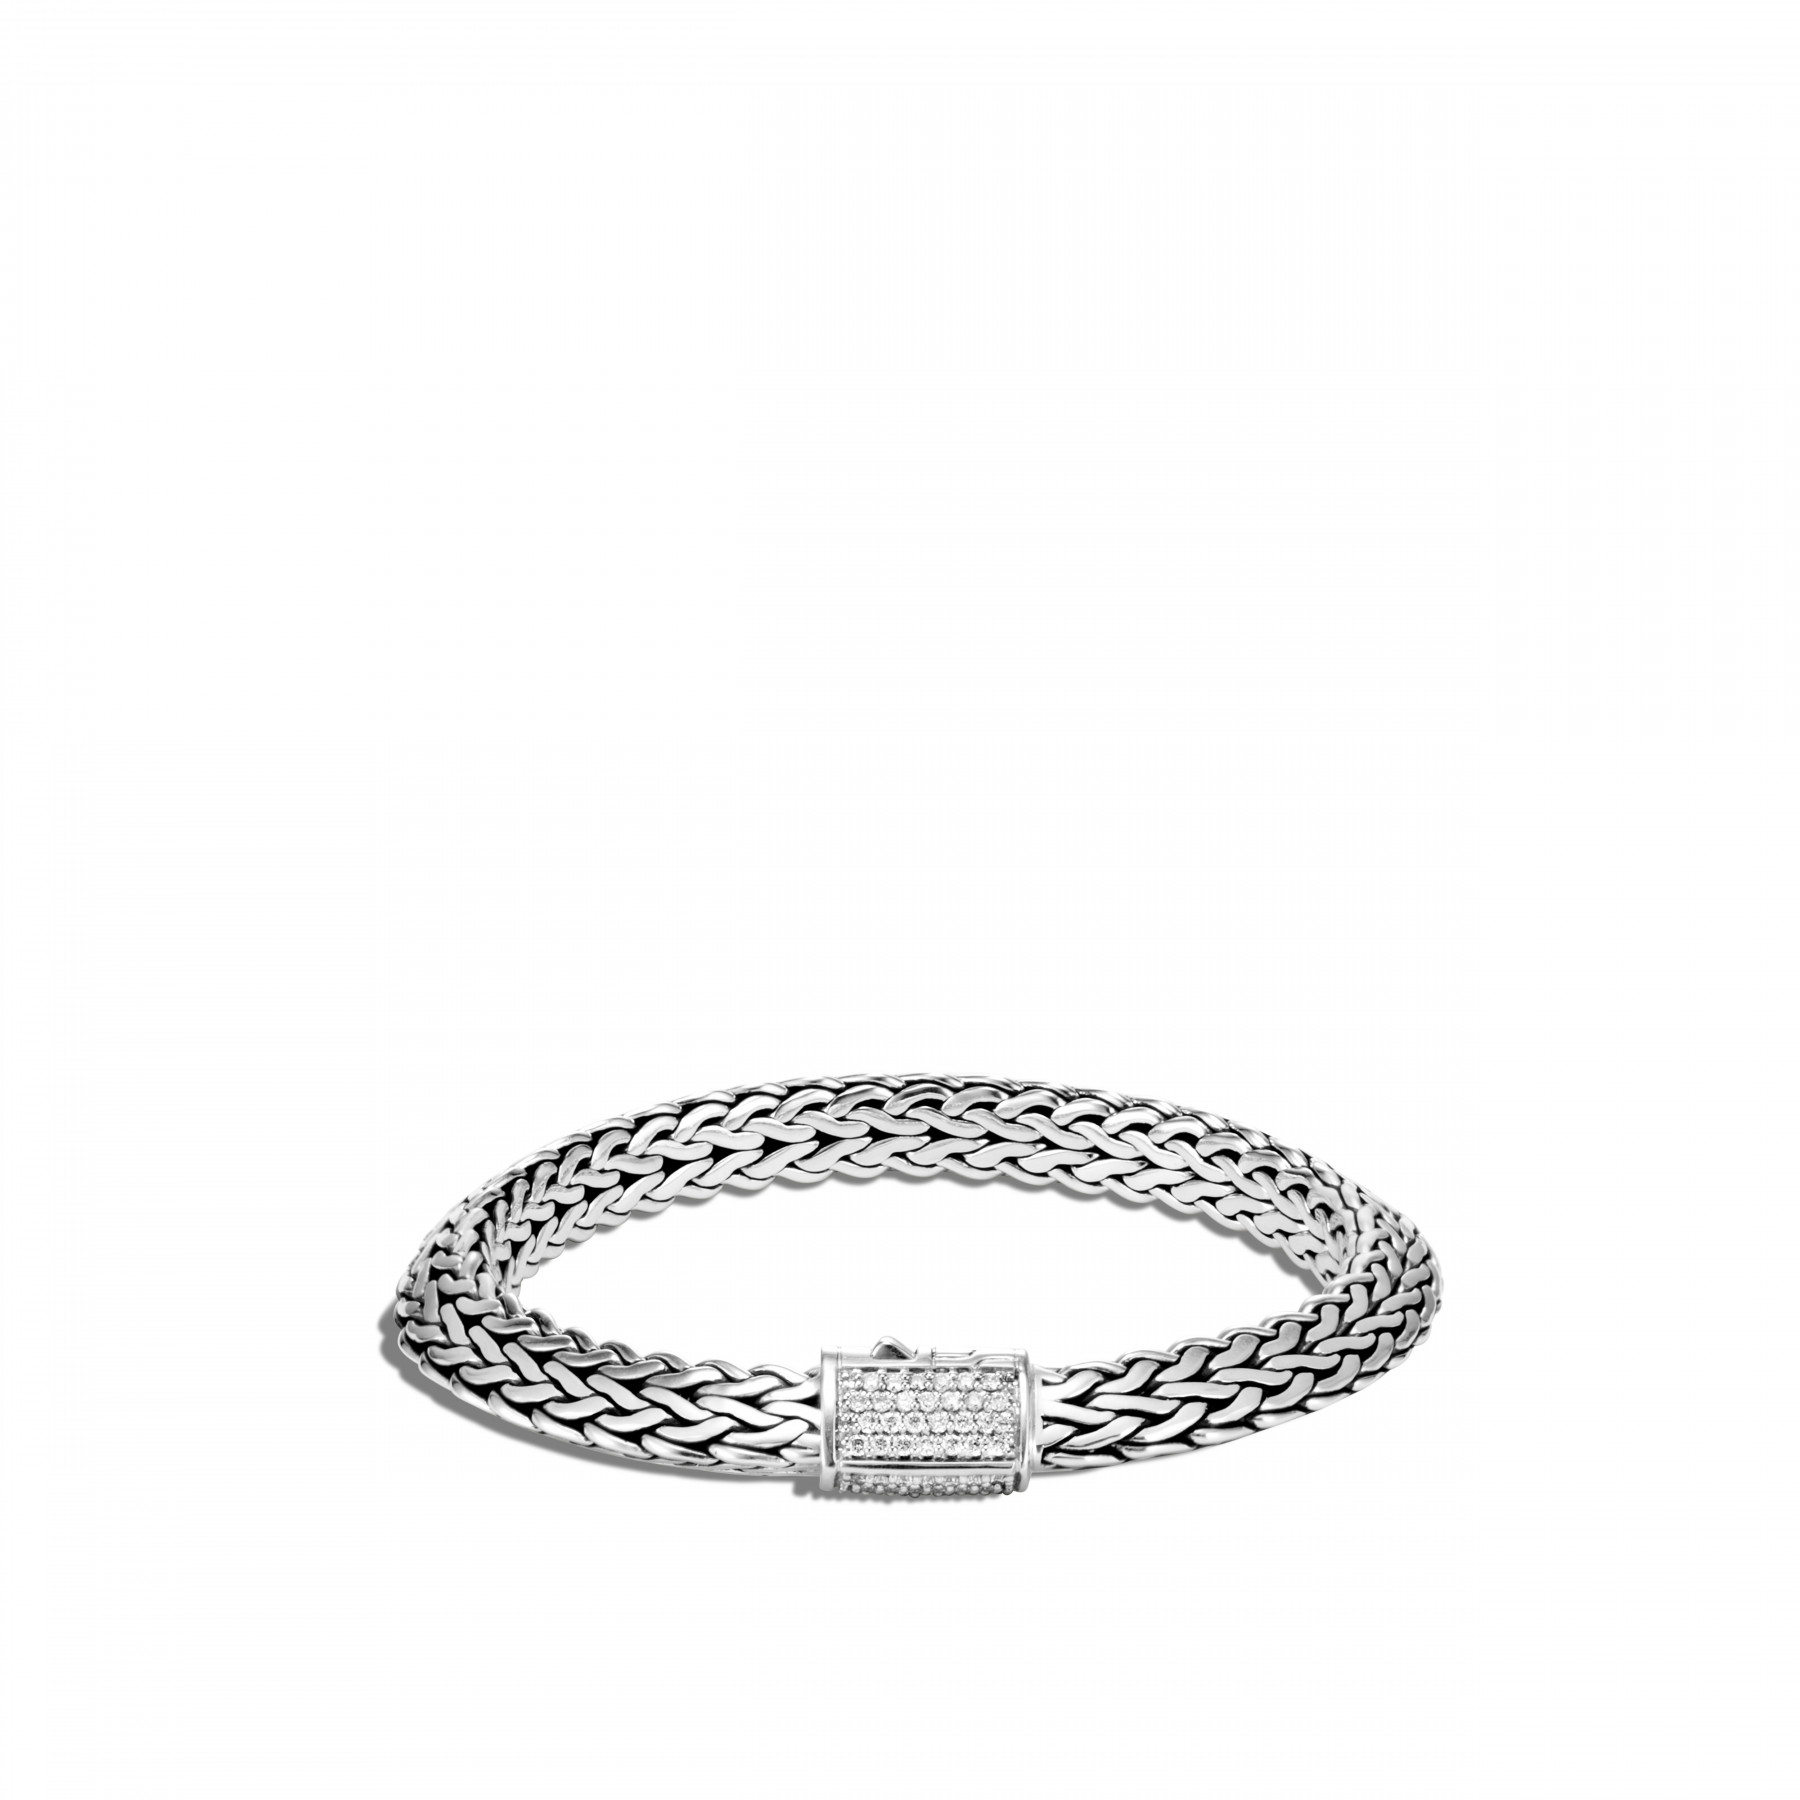 John Hardy Classic Chain Diamond Silver Bracelet - 8mm front view